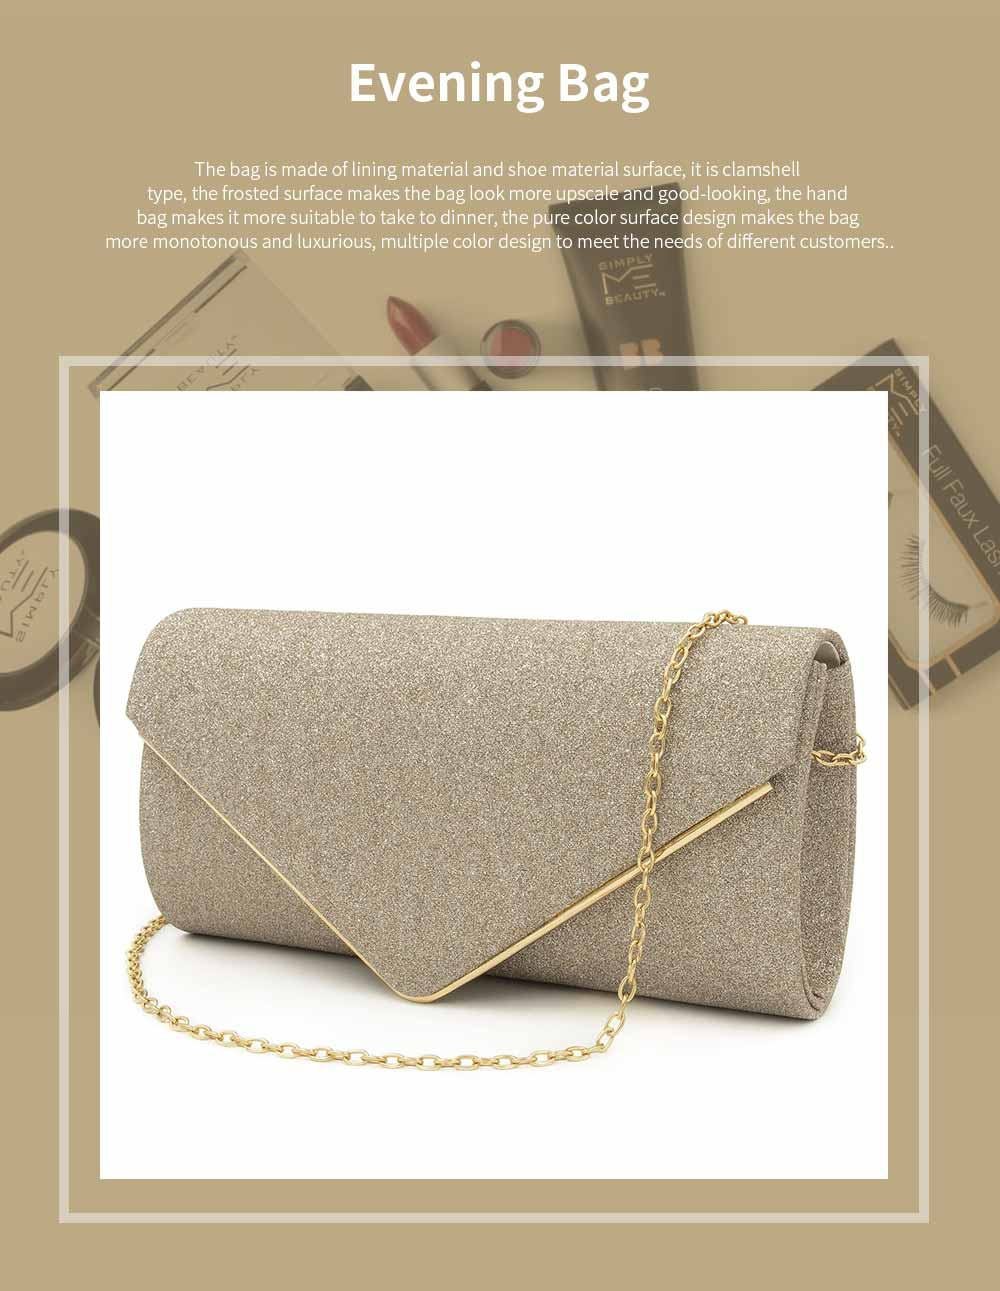 Evening Bag Lining Clothe Material Elegant Clutch for Dinner Women Shiny Envelope-bag Good-looking Handbag 0